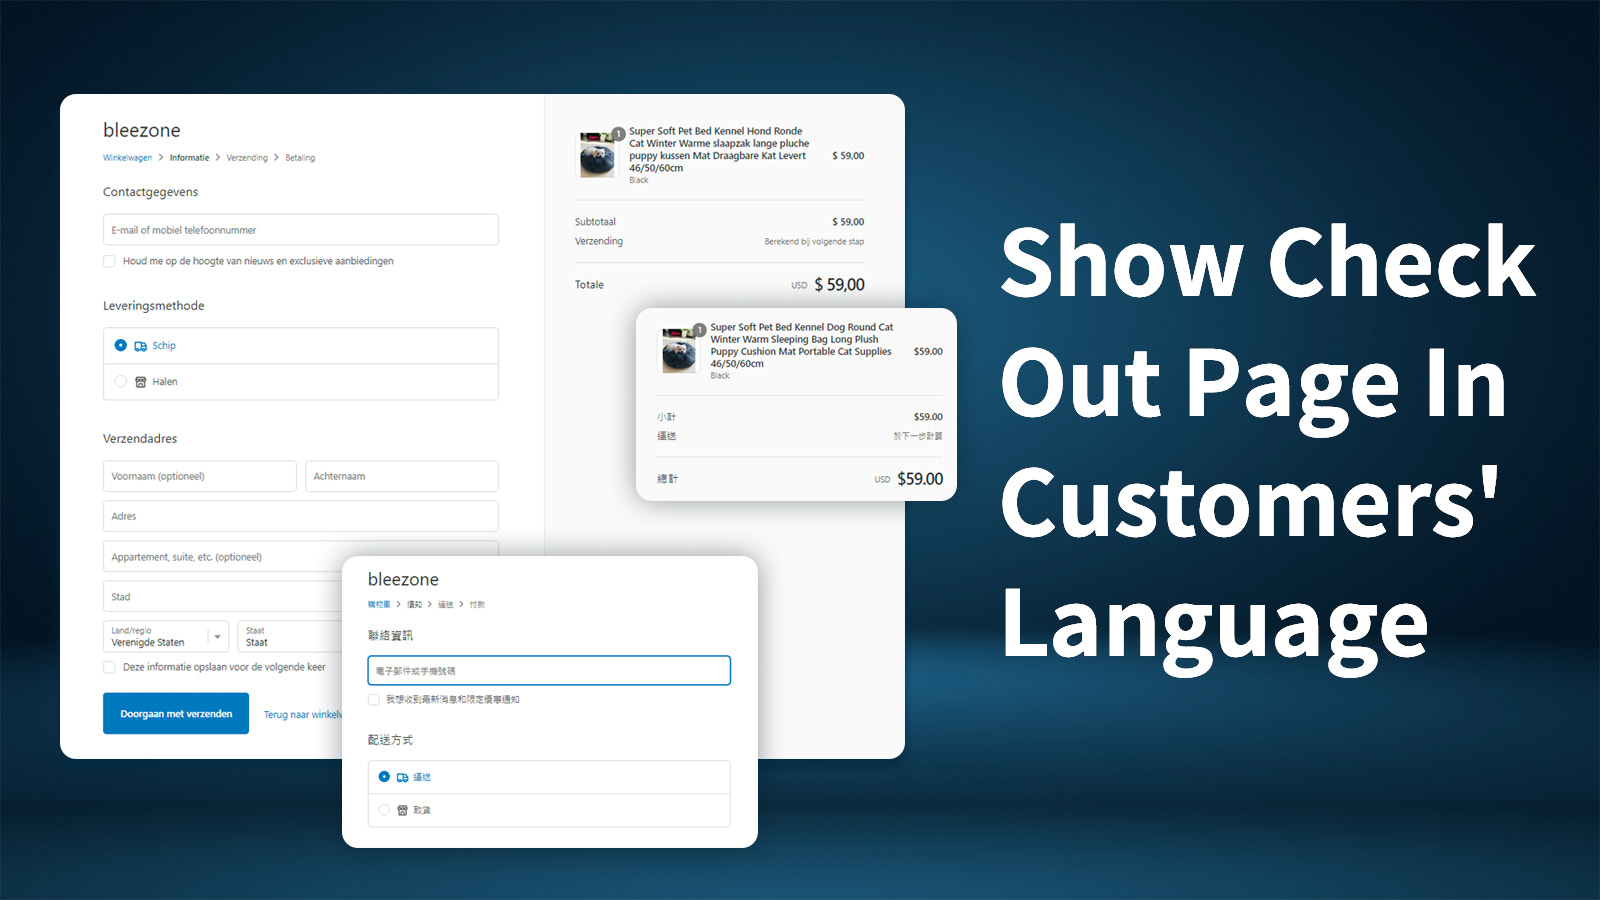 Show checkout page in customers' language